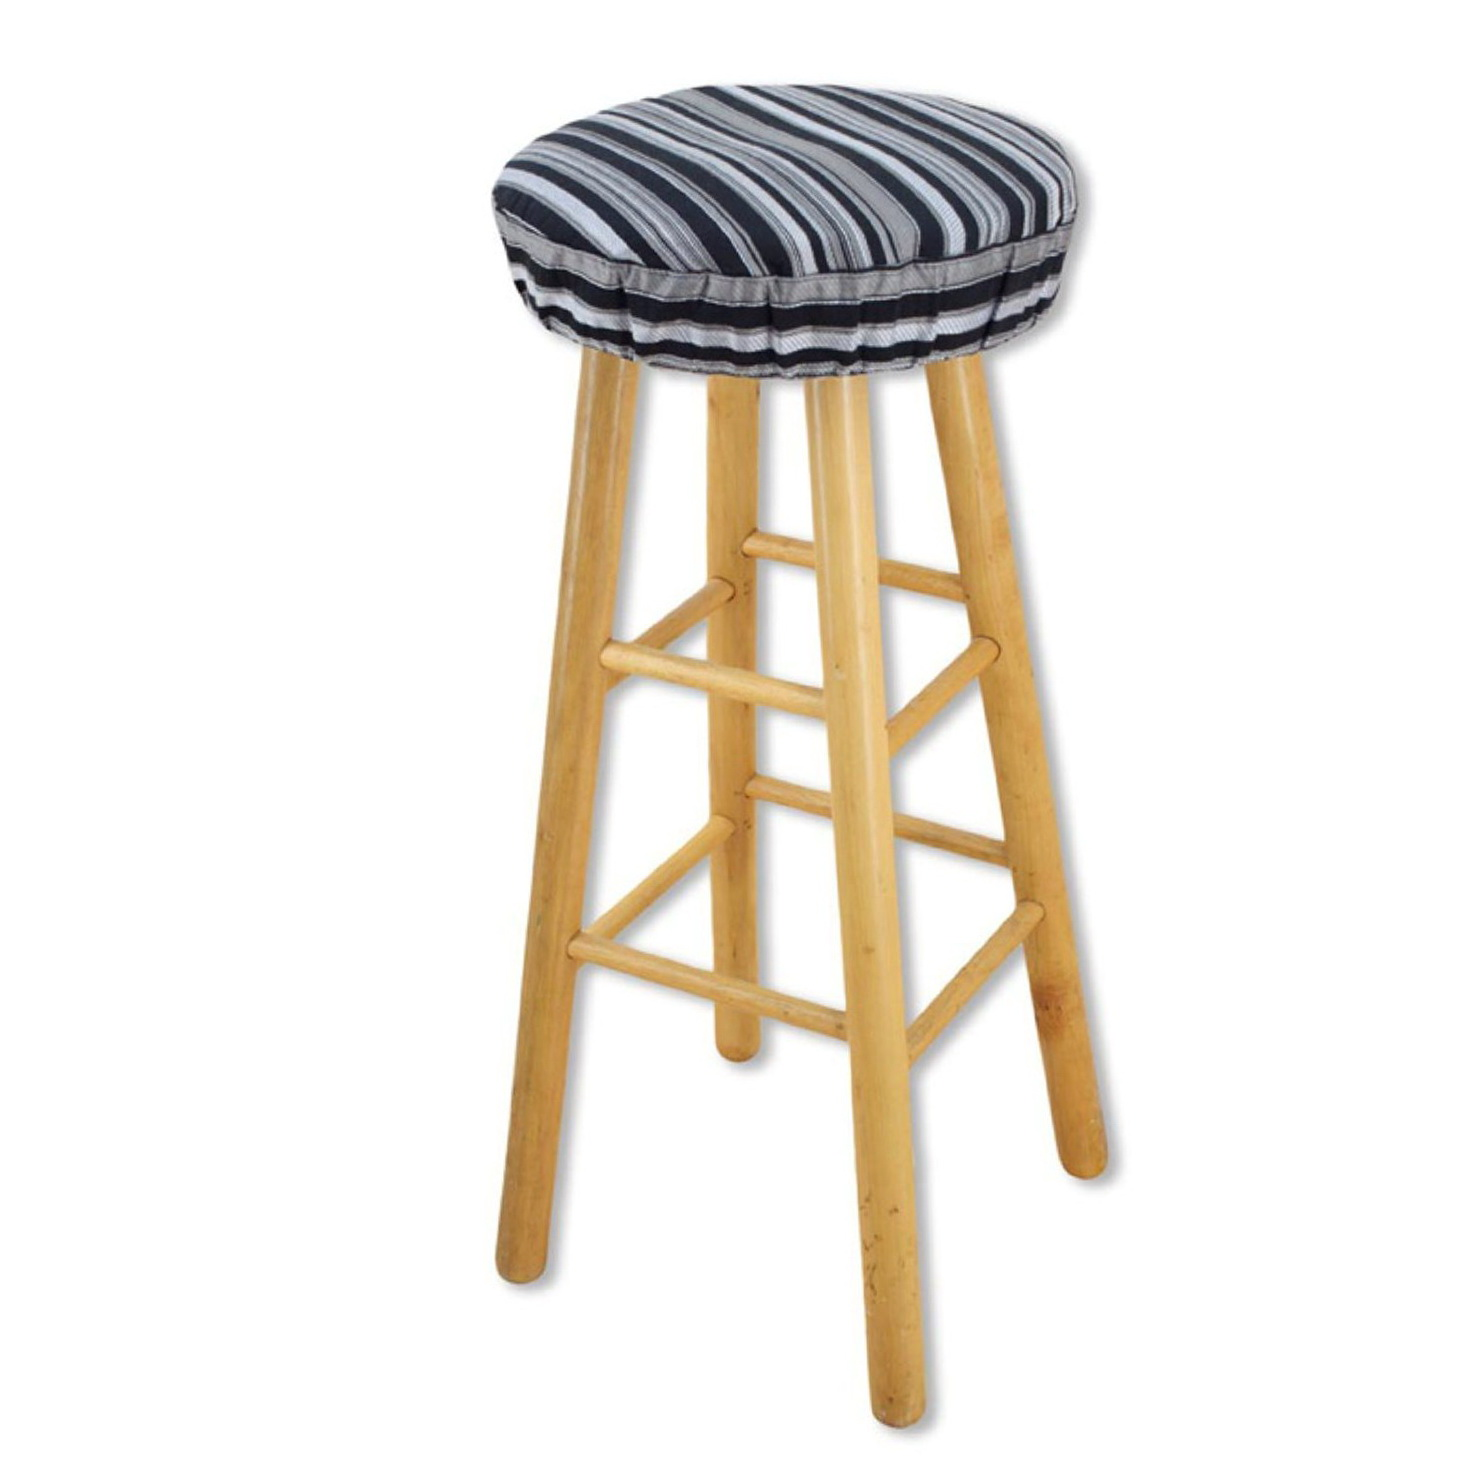 Round Seat Cushions For Stools Home Design Ideas